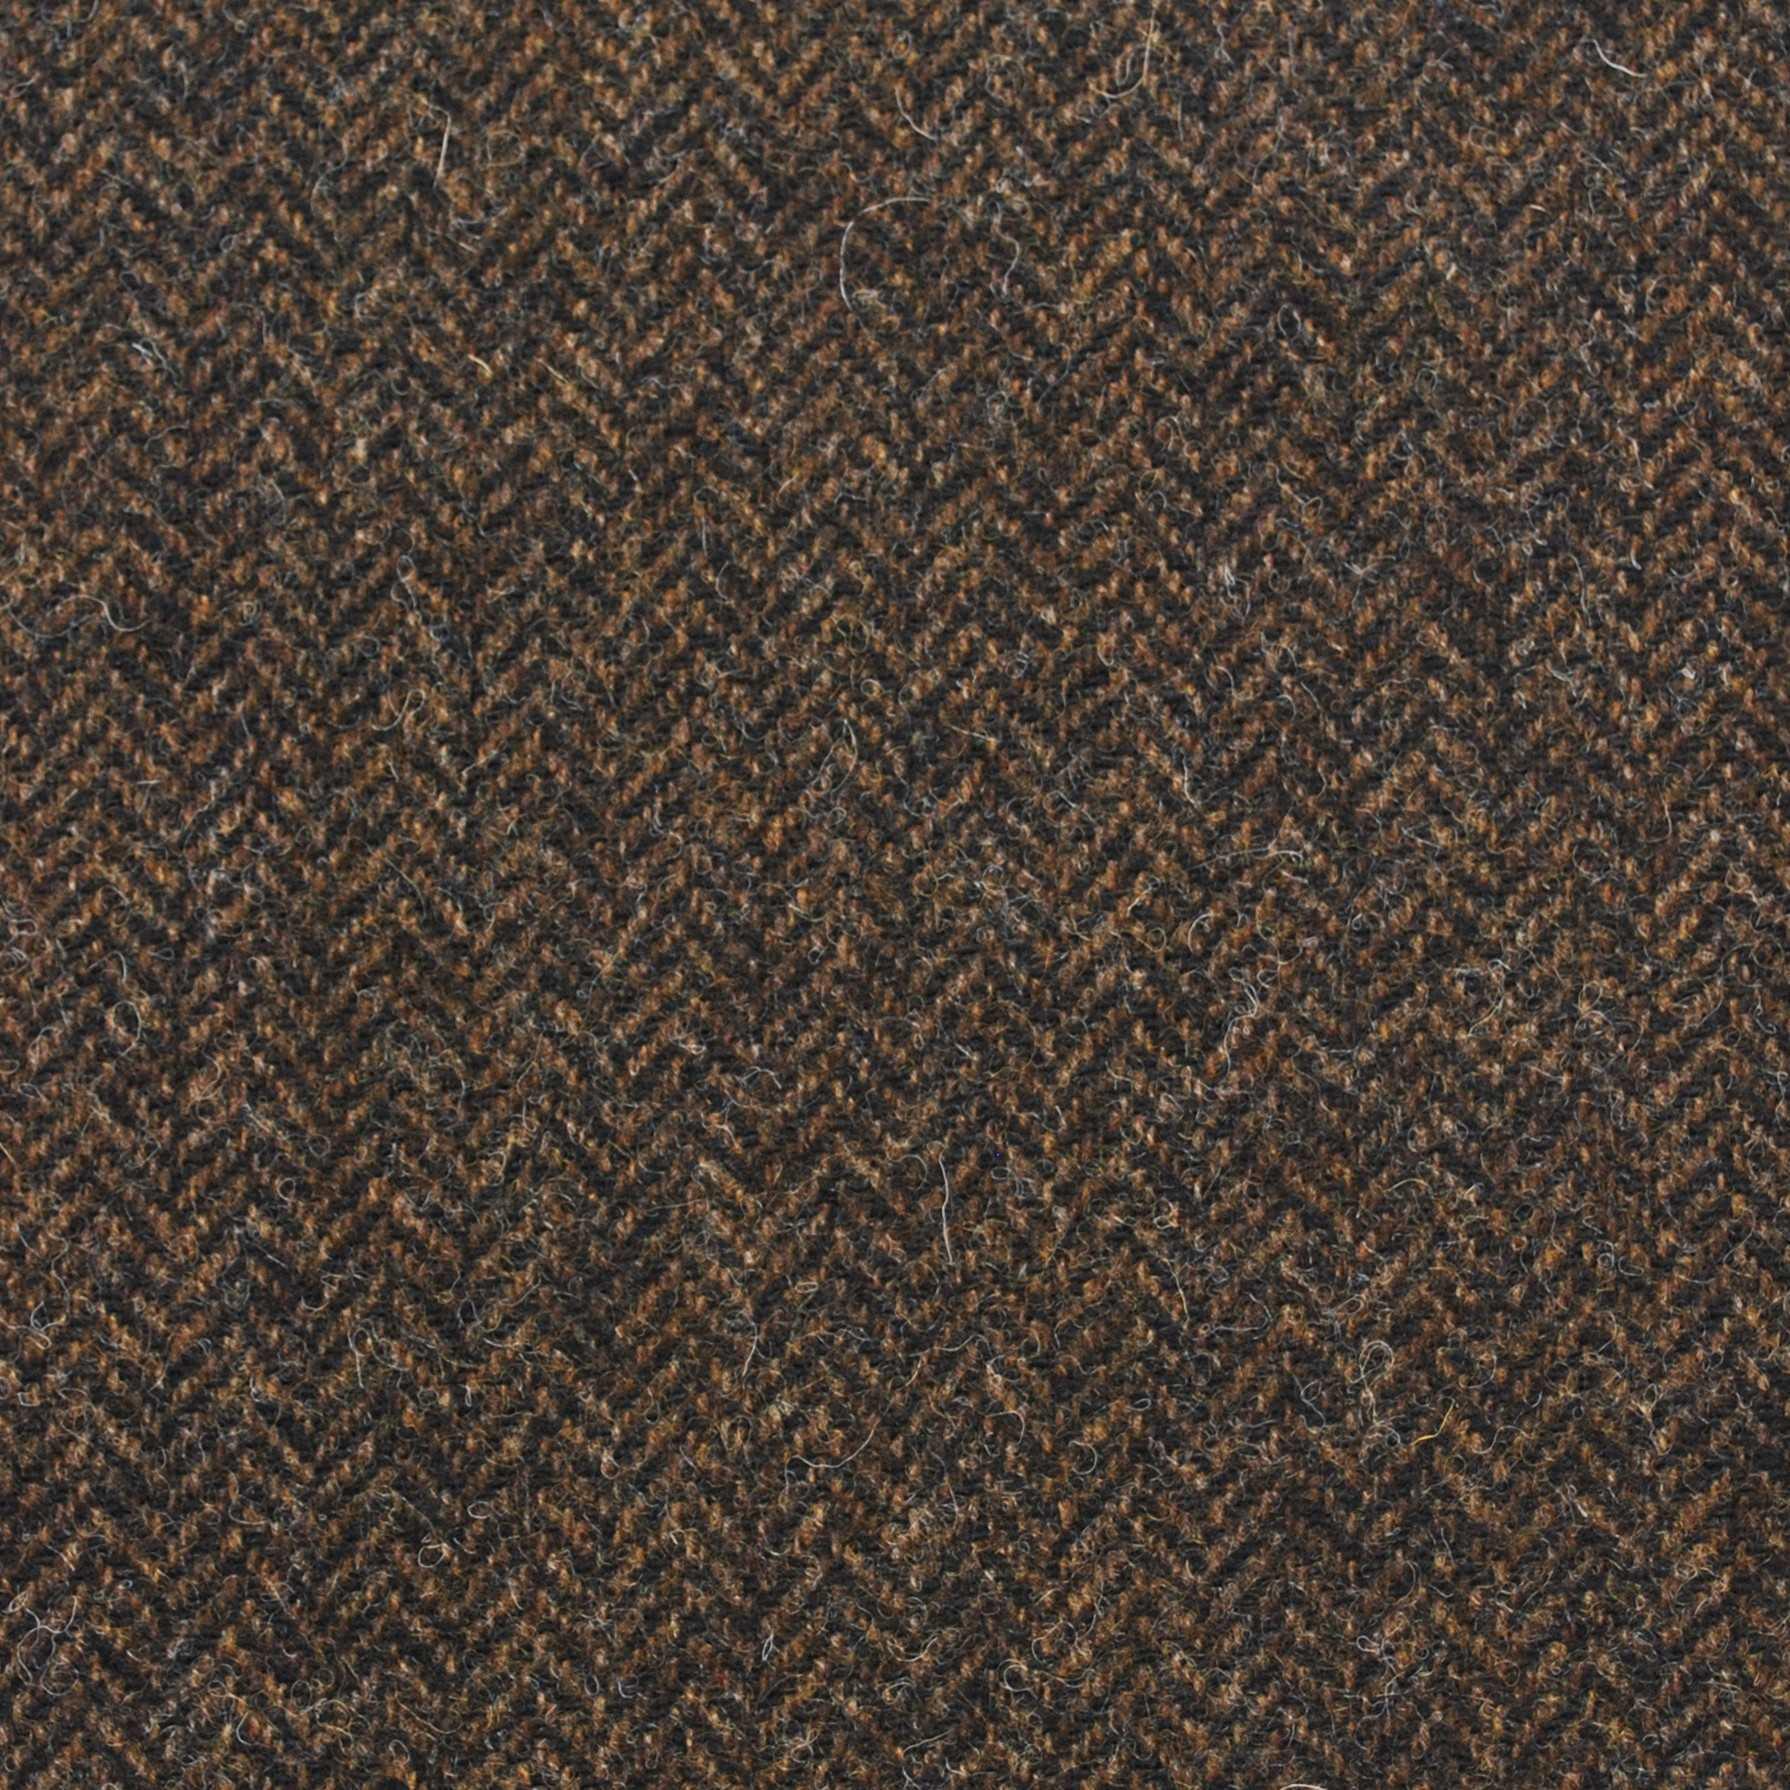 Dark Brown Mix Herringbone